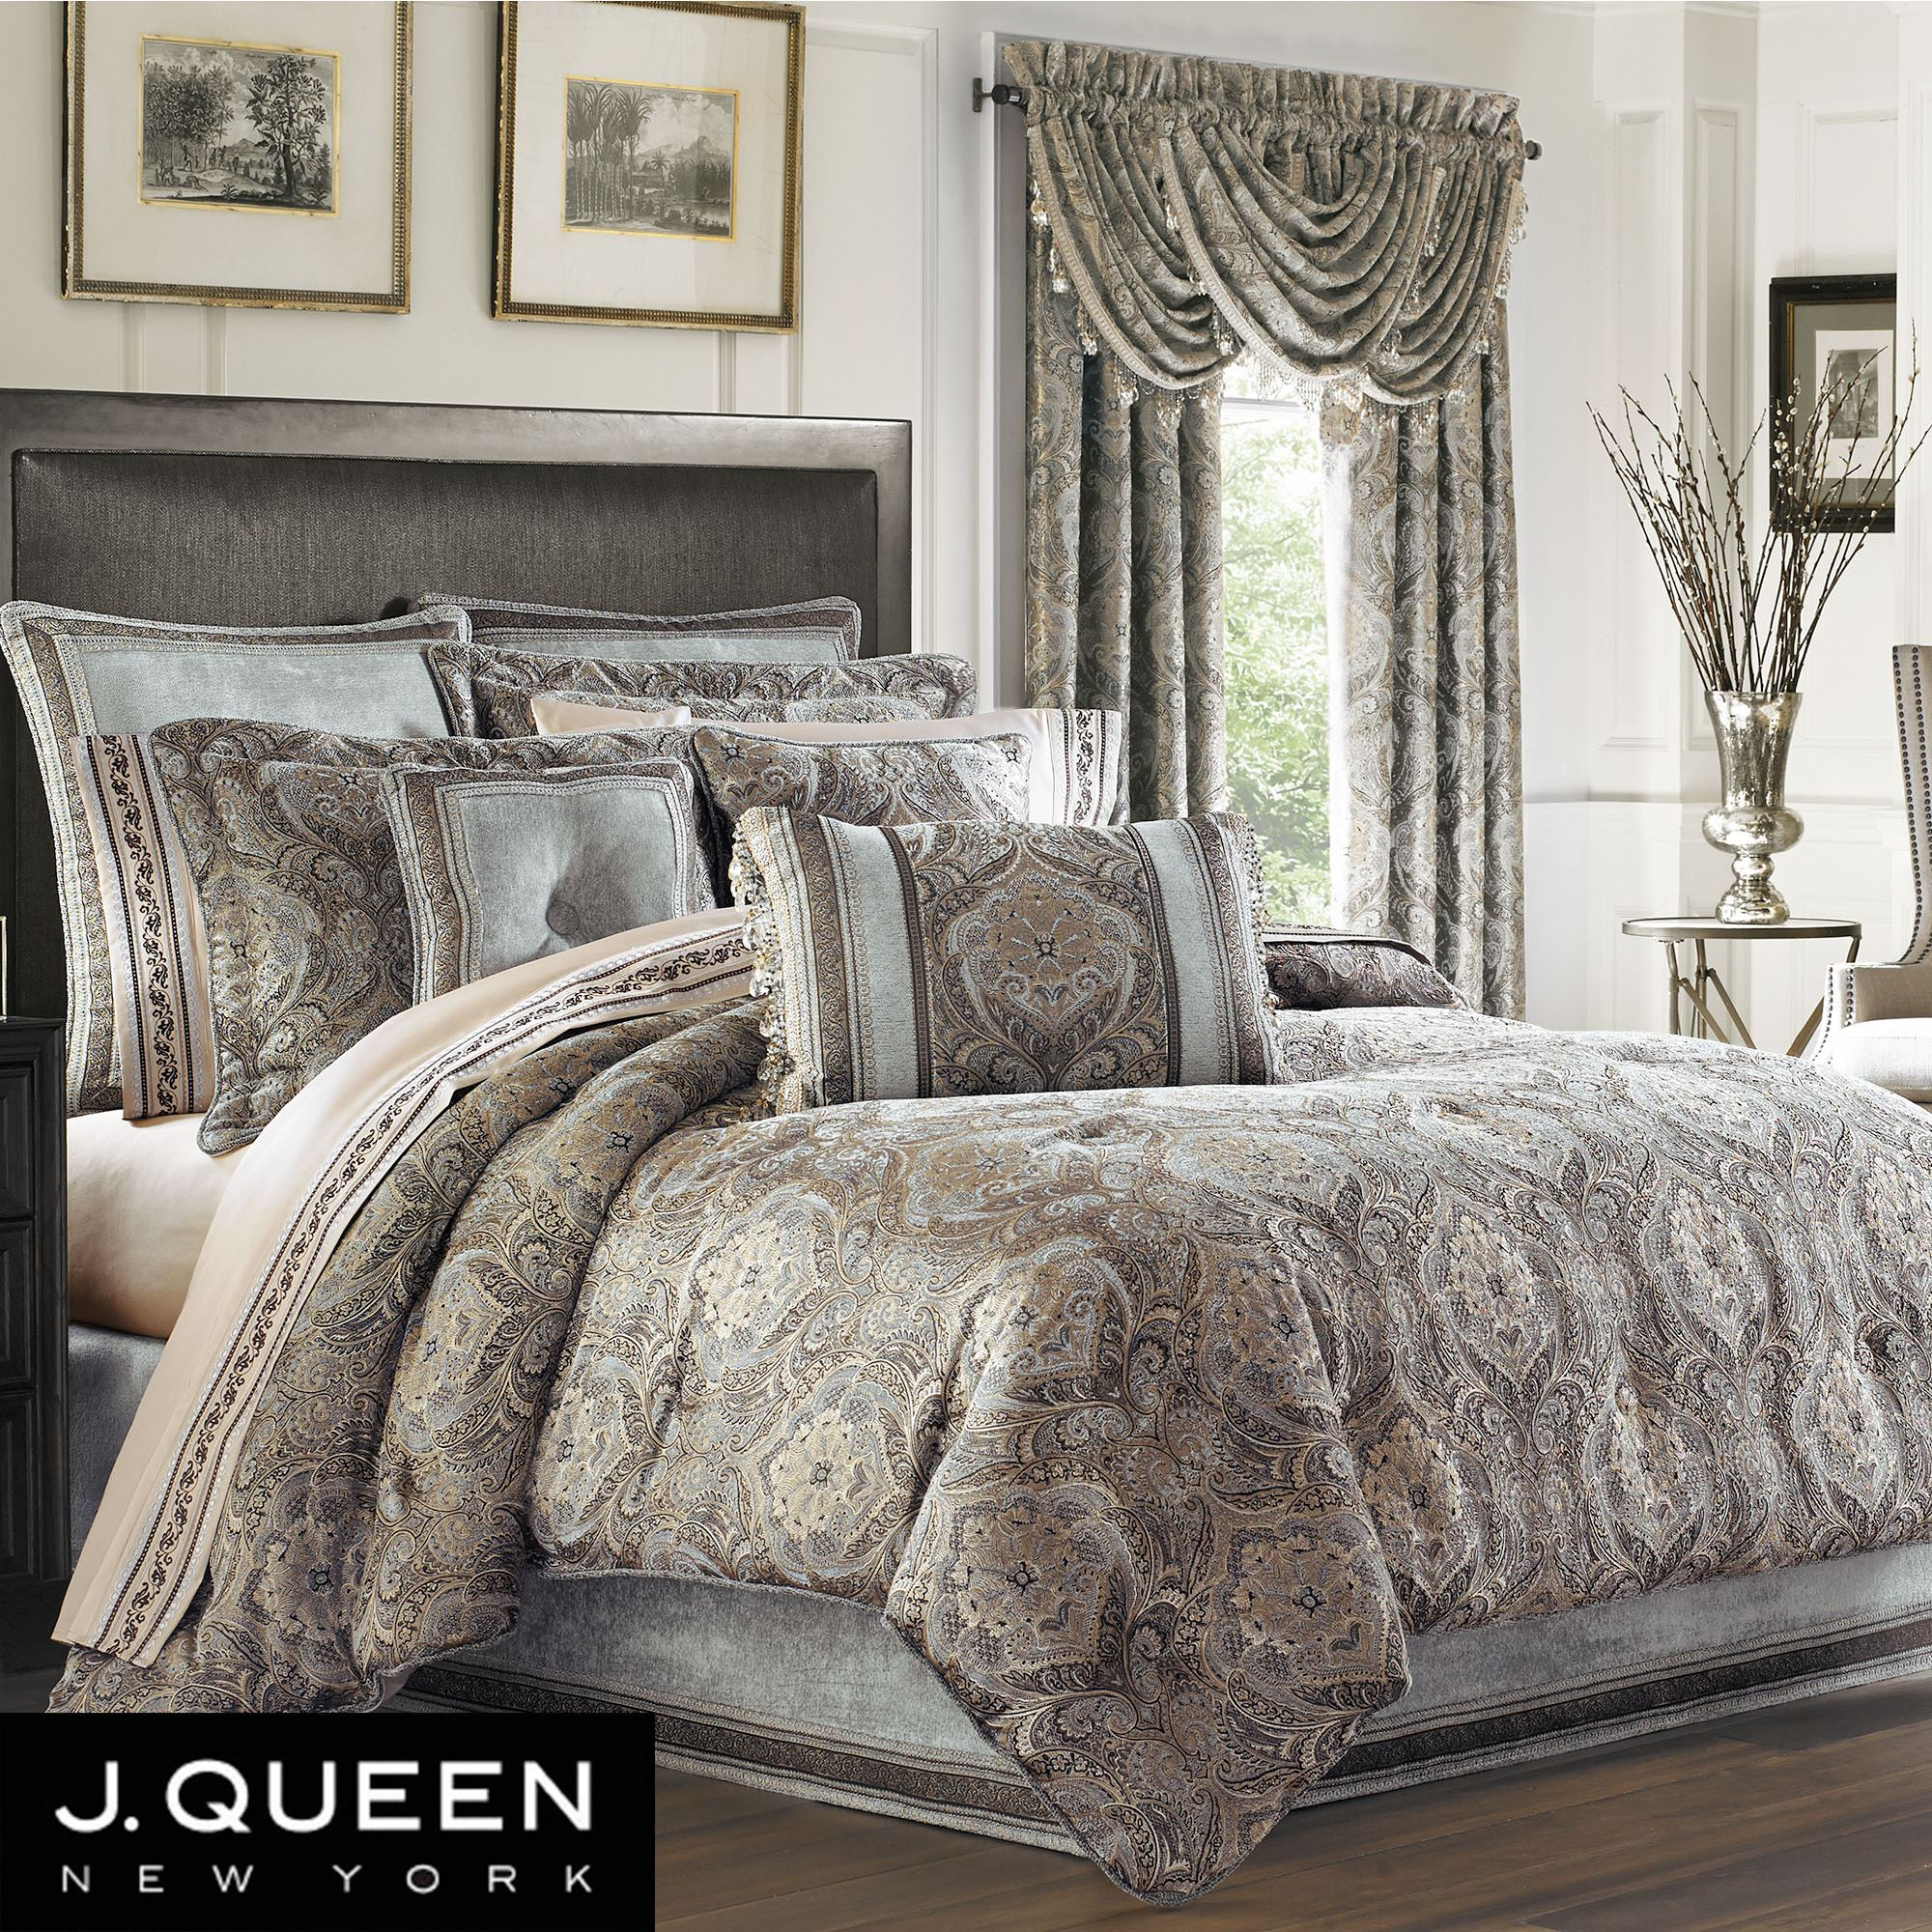 Provence Scroll Medallion Comforter Bedding By J Queen New